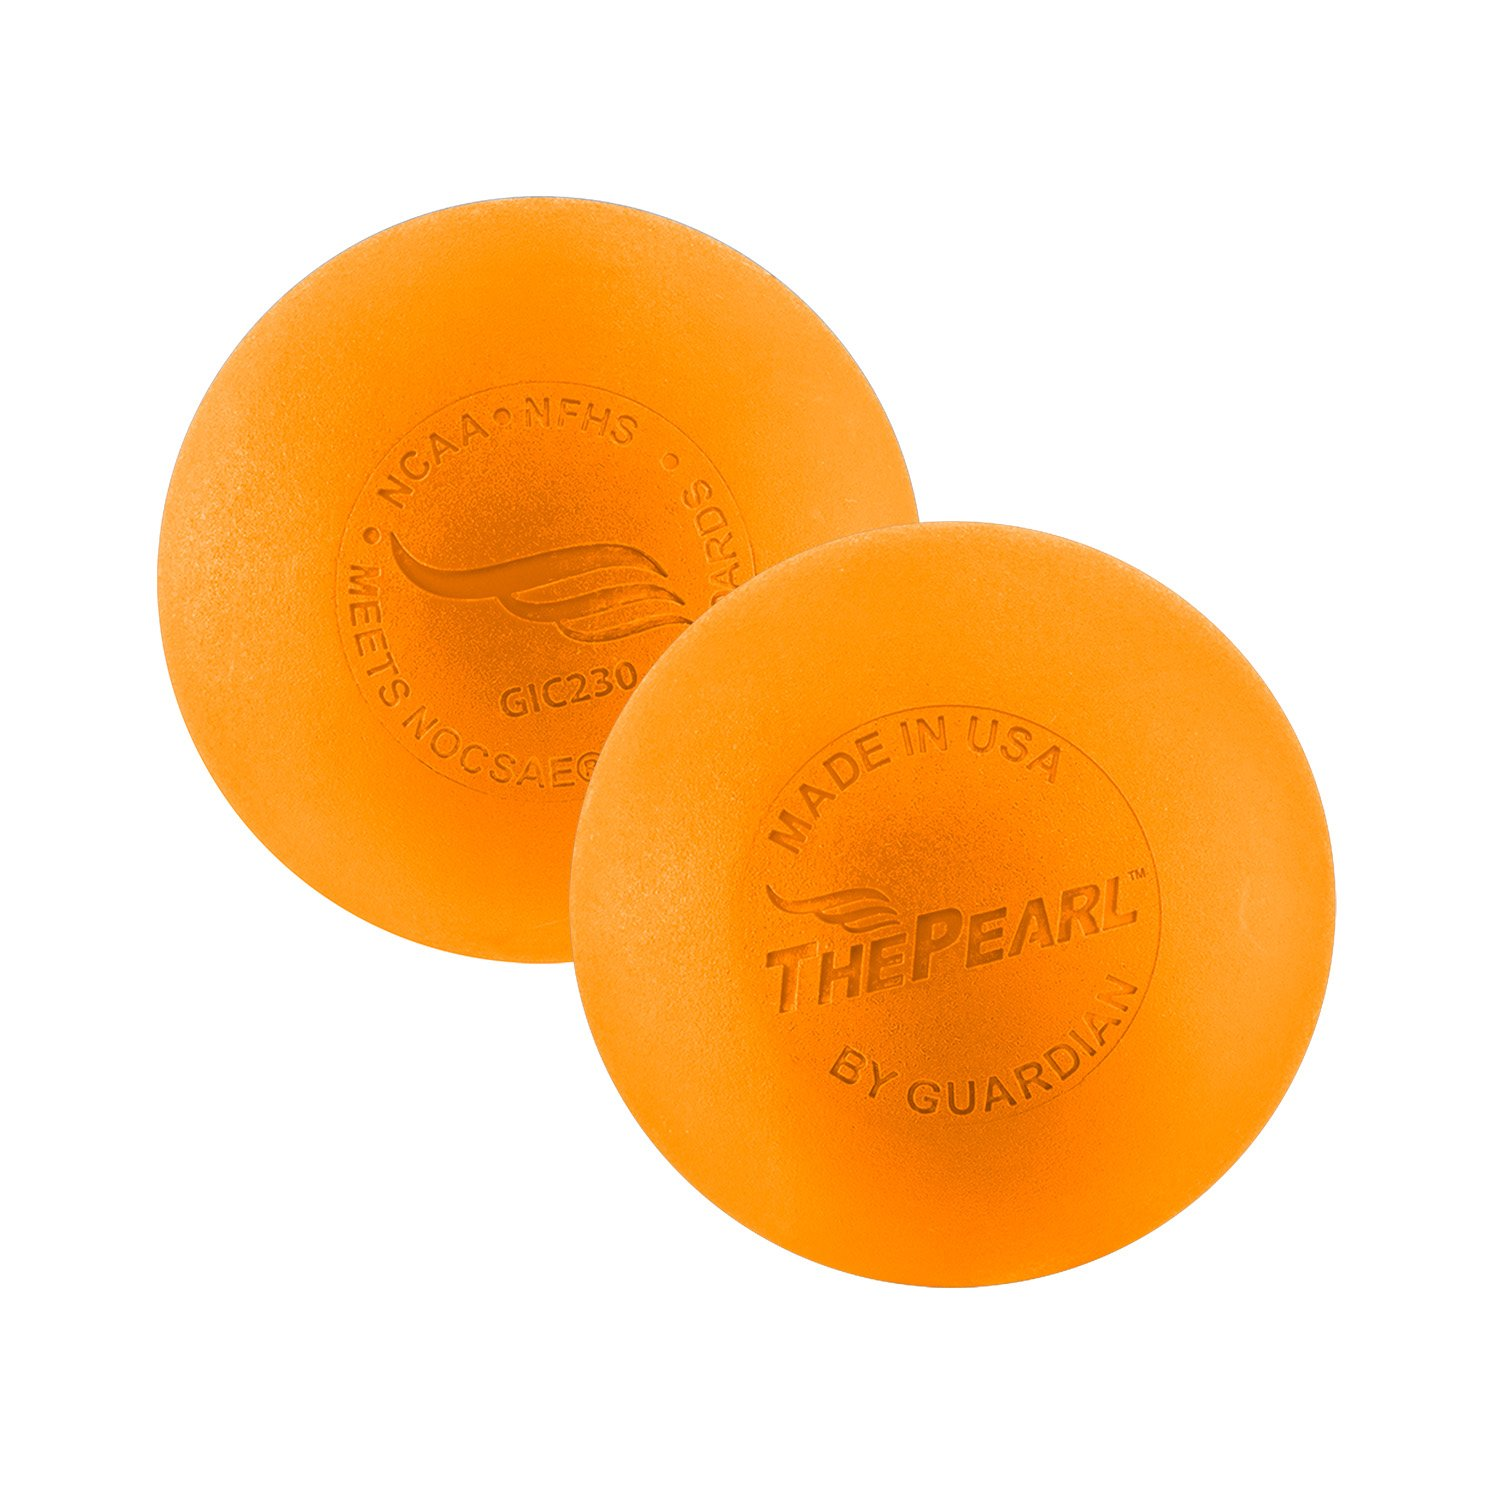 The Pearl by Guardian - Greaseless Lacrosse Balls (Orange, 10 Pack)